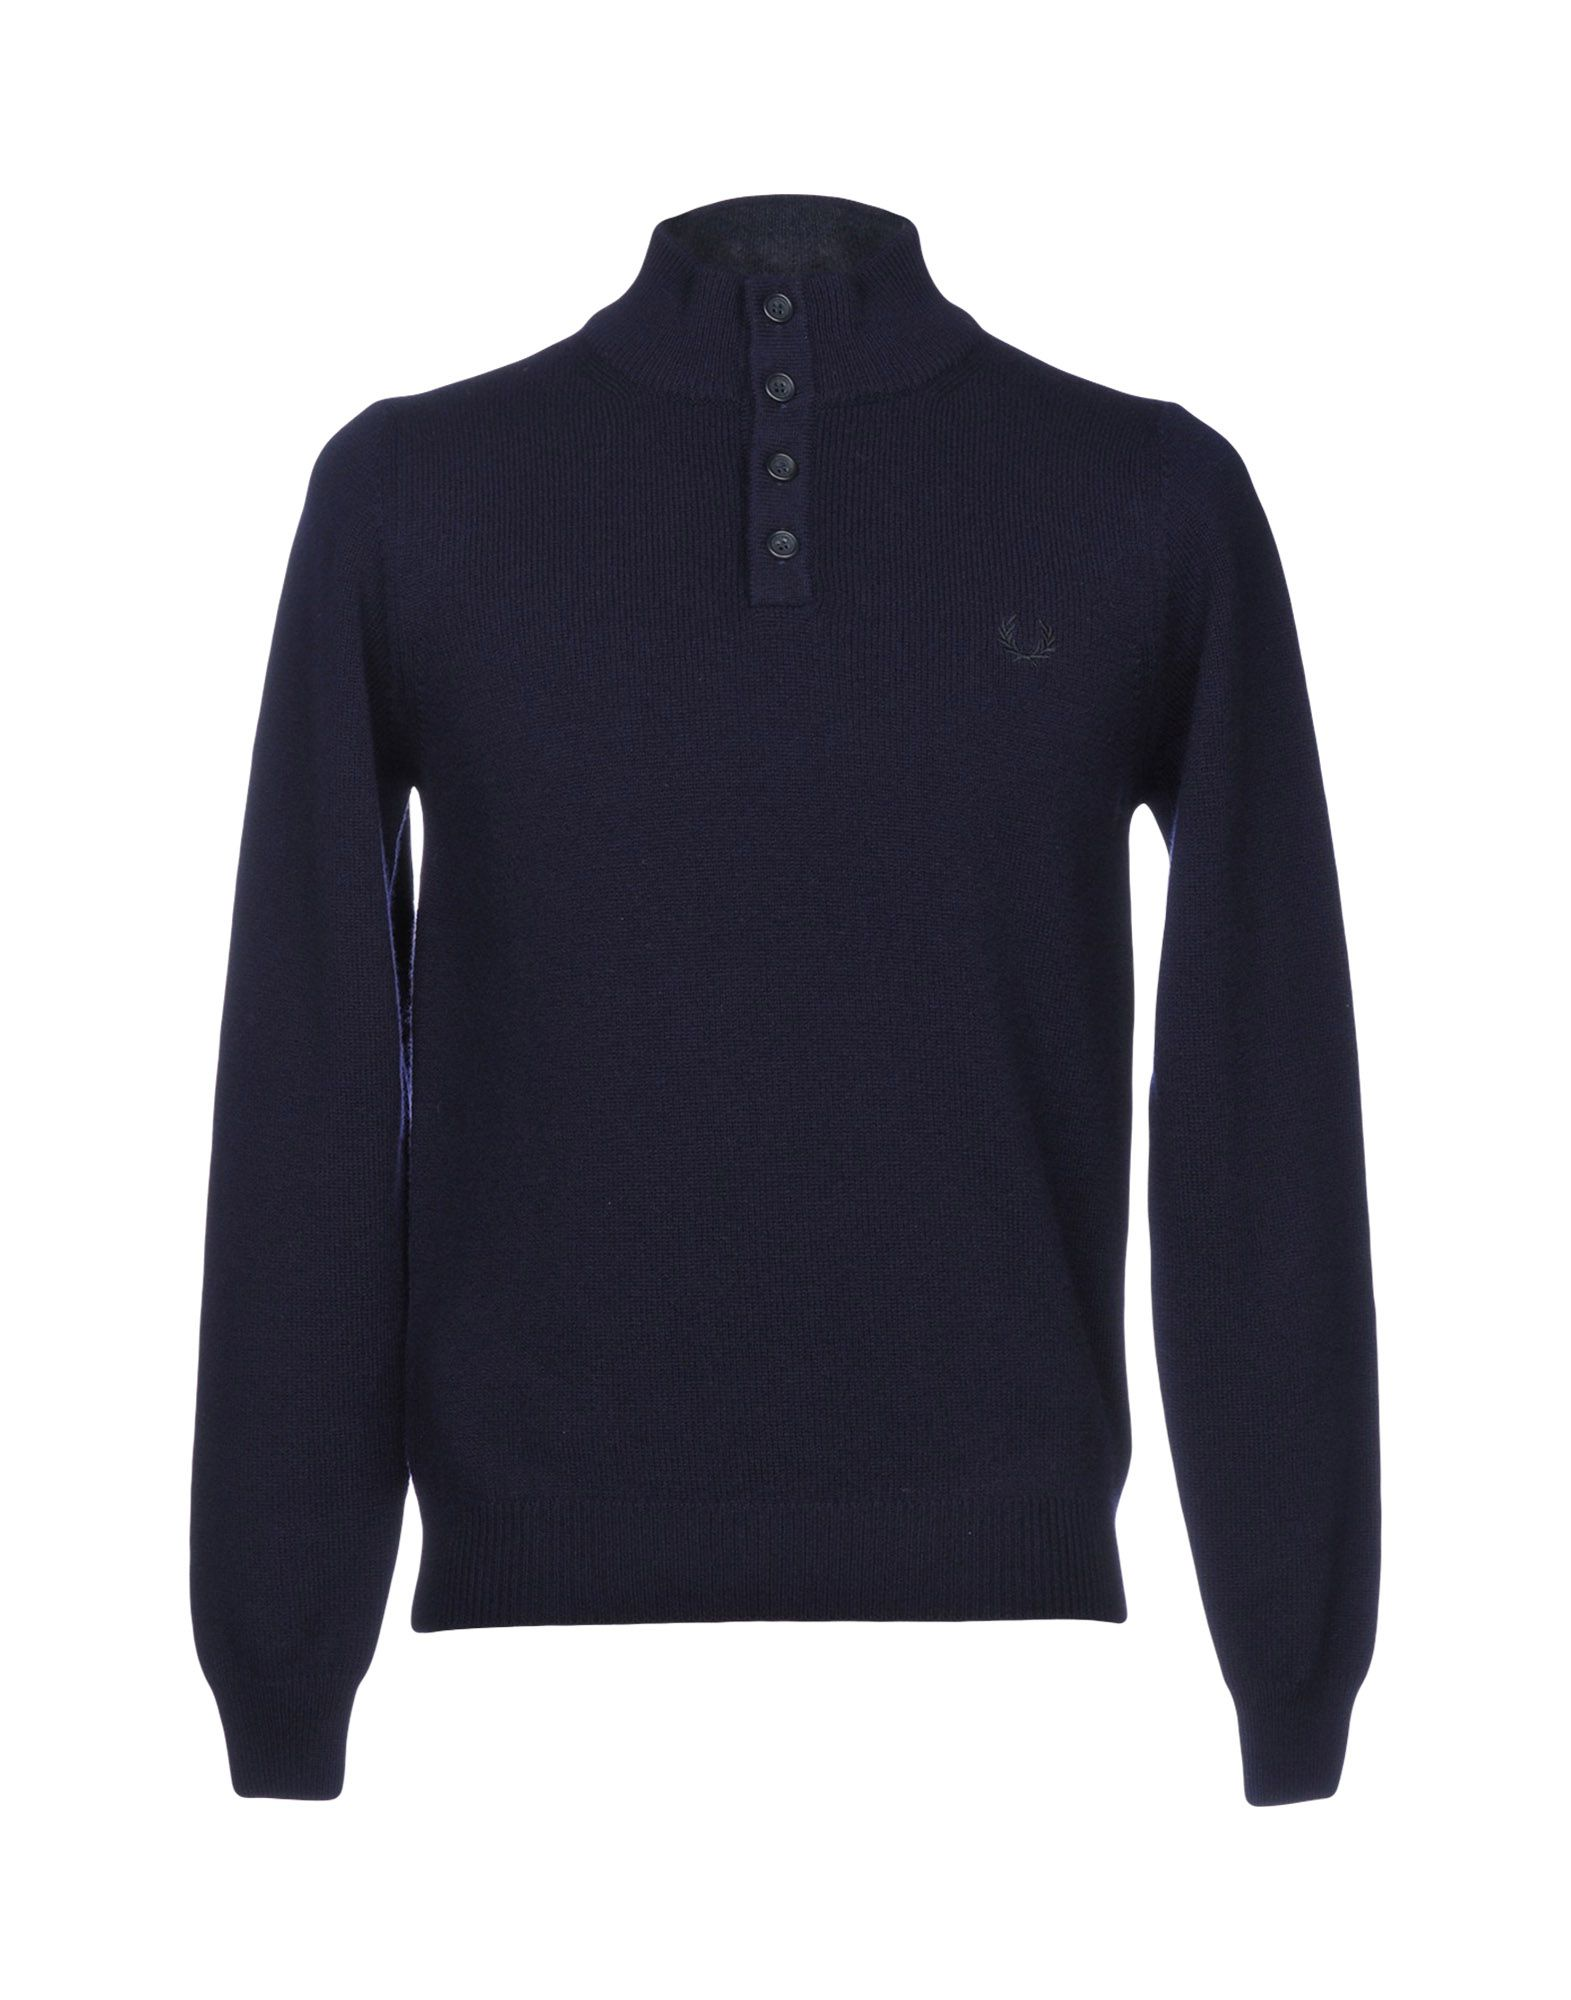 FRED PERRY Водолазки рубашка мужская fred perry 65 incoool 15